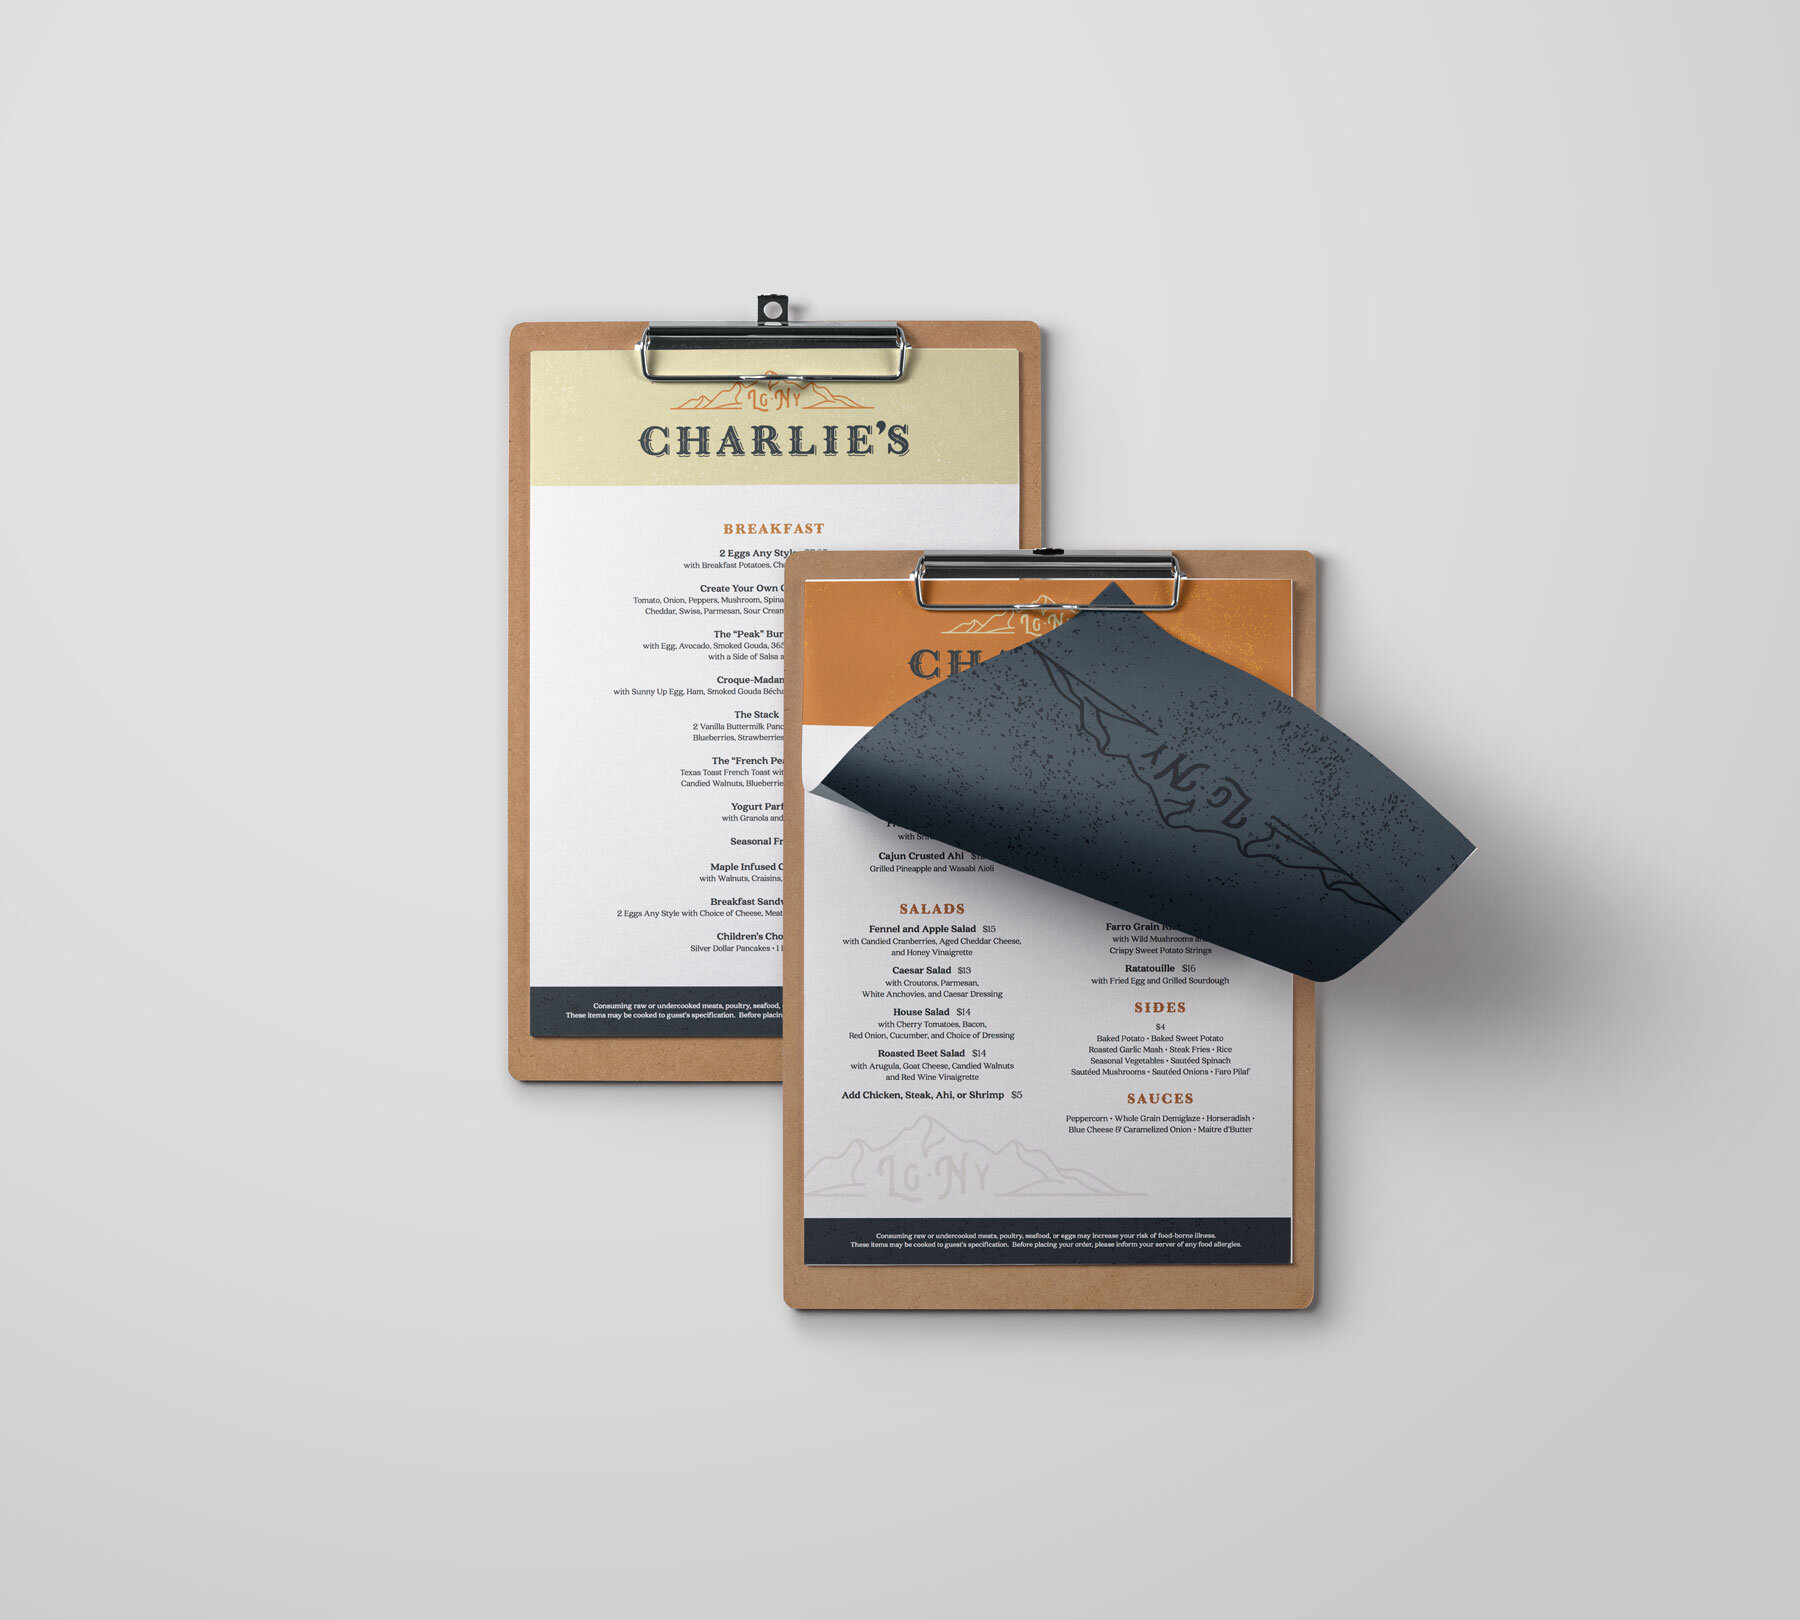 Menu Design - We carried the branding through a versatile menu design, which includes everything from Breakfast to Dinner and a little history about the family.